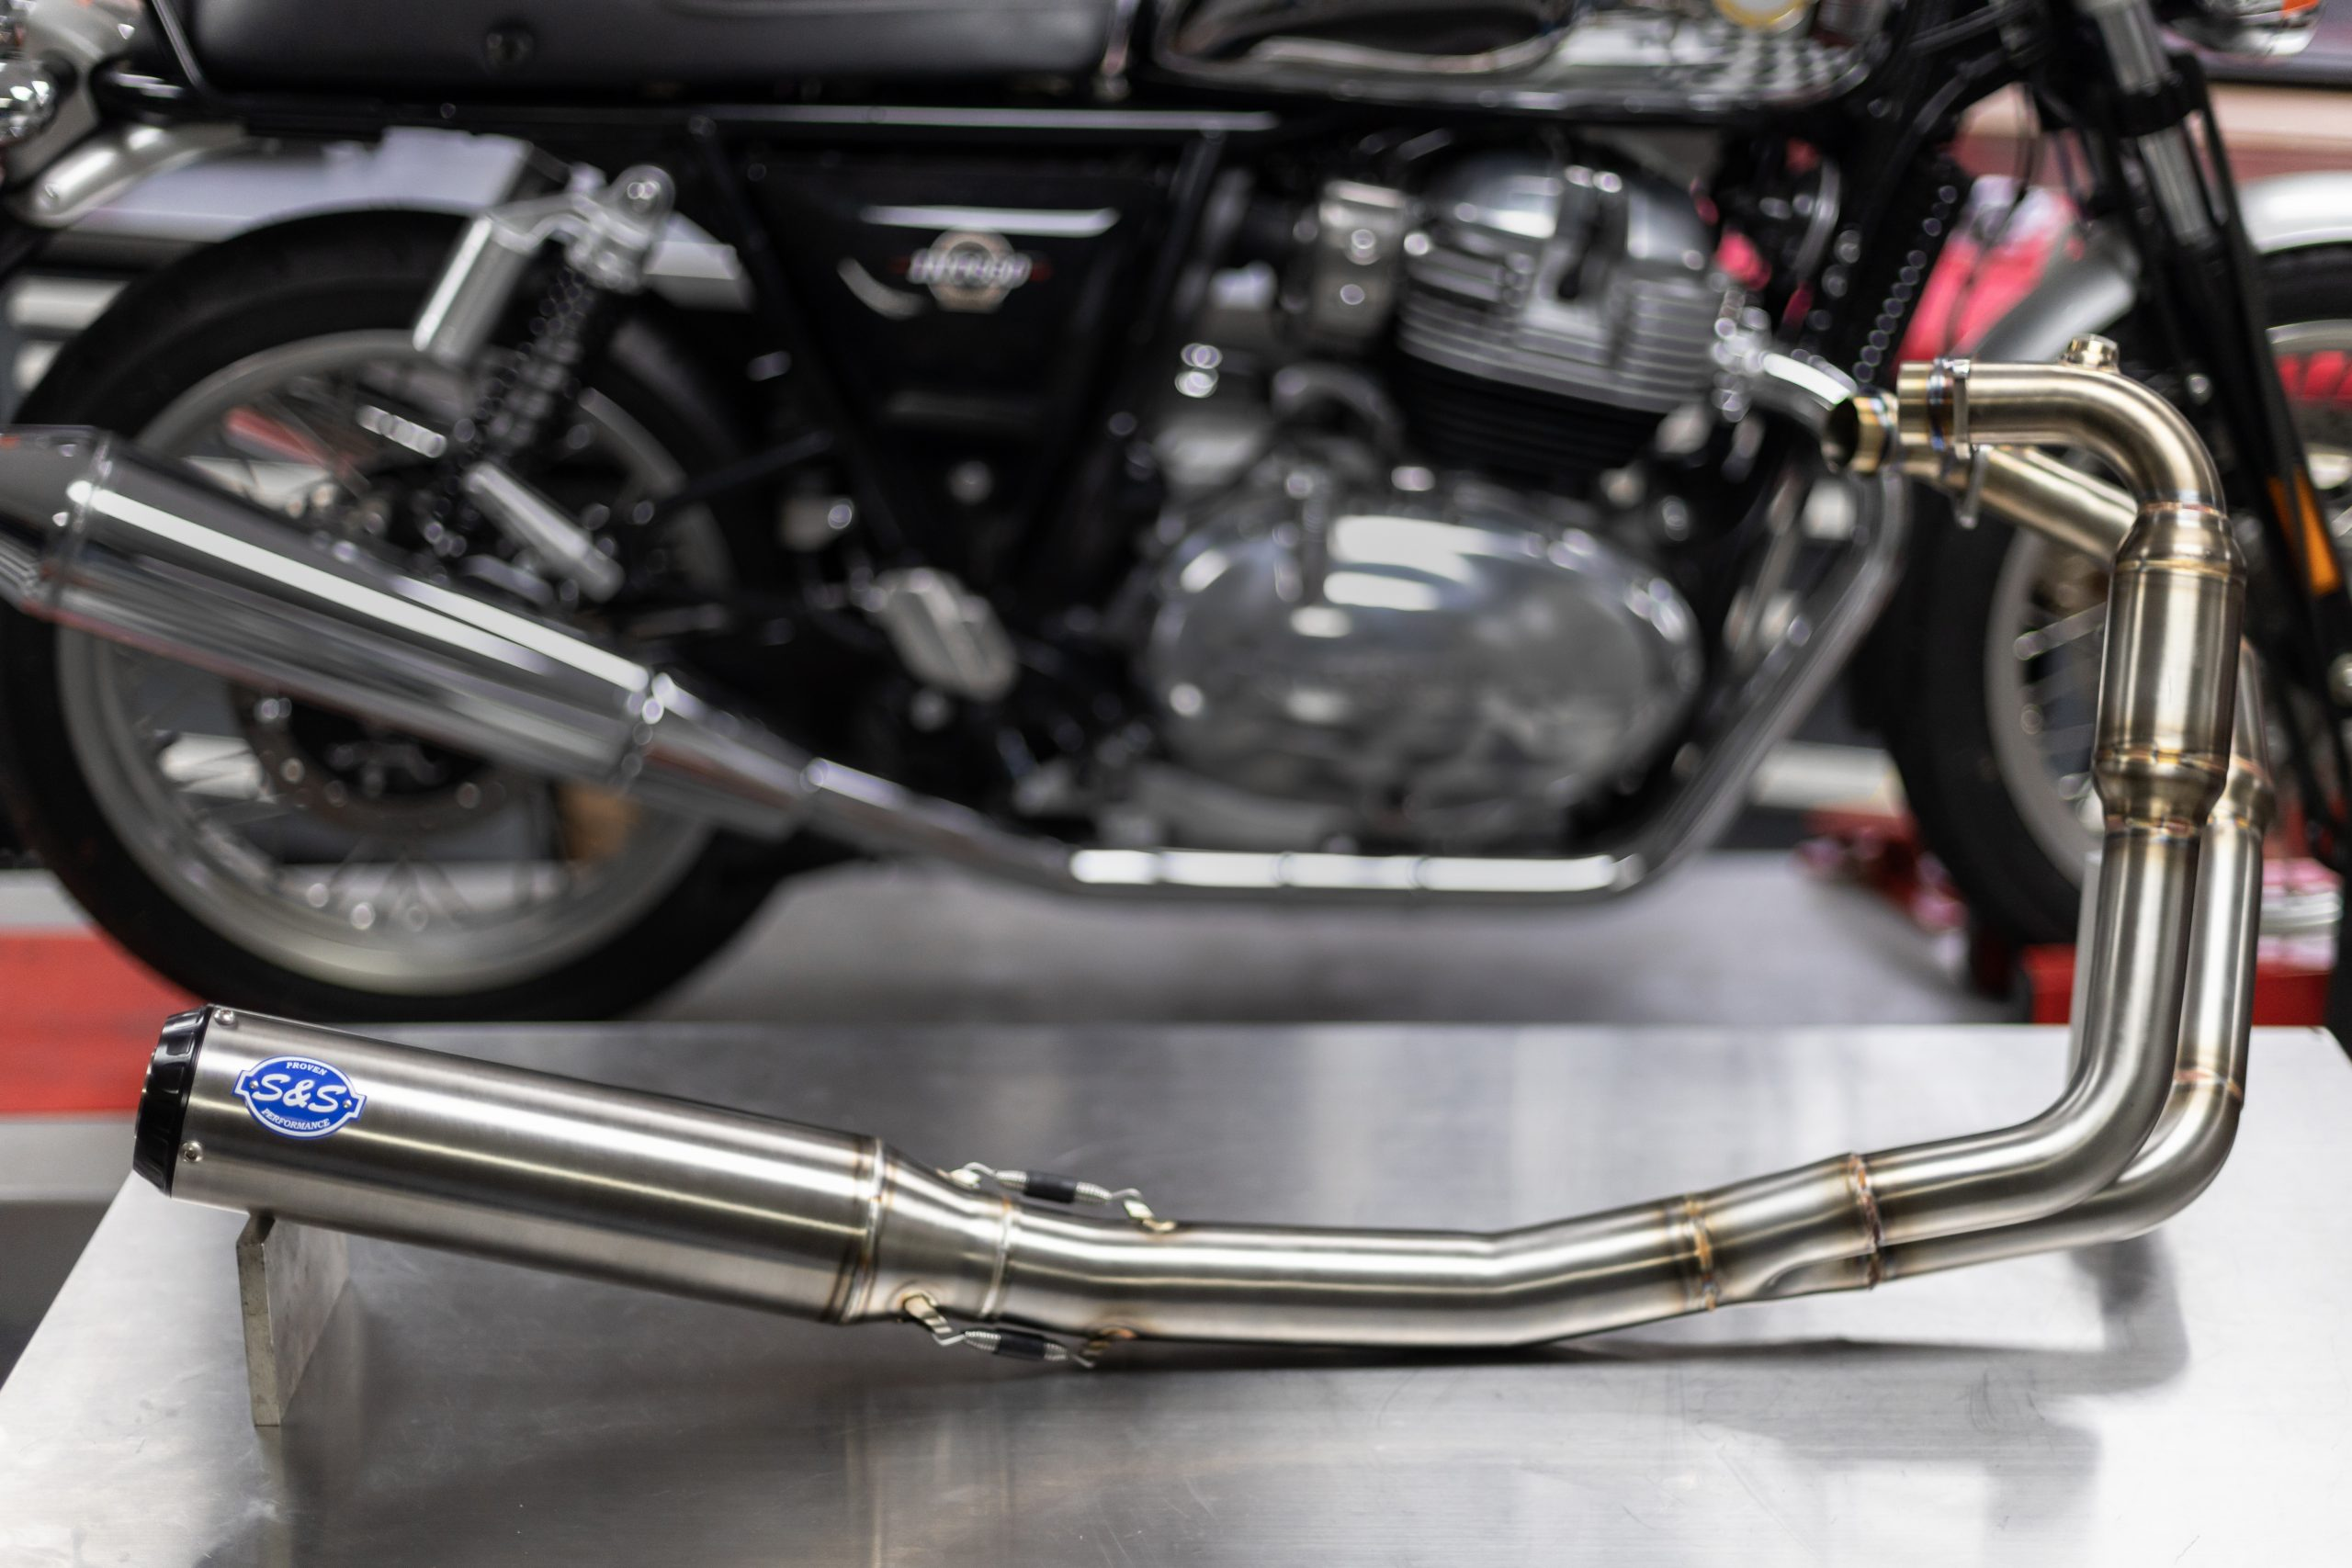 210426 Qualifier 2-1 Stainless Exhaust System for the Royal Enfield 650 Twin (1)